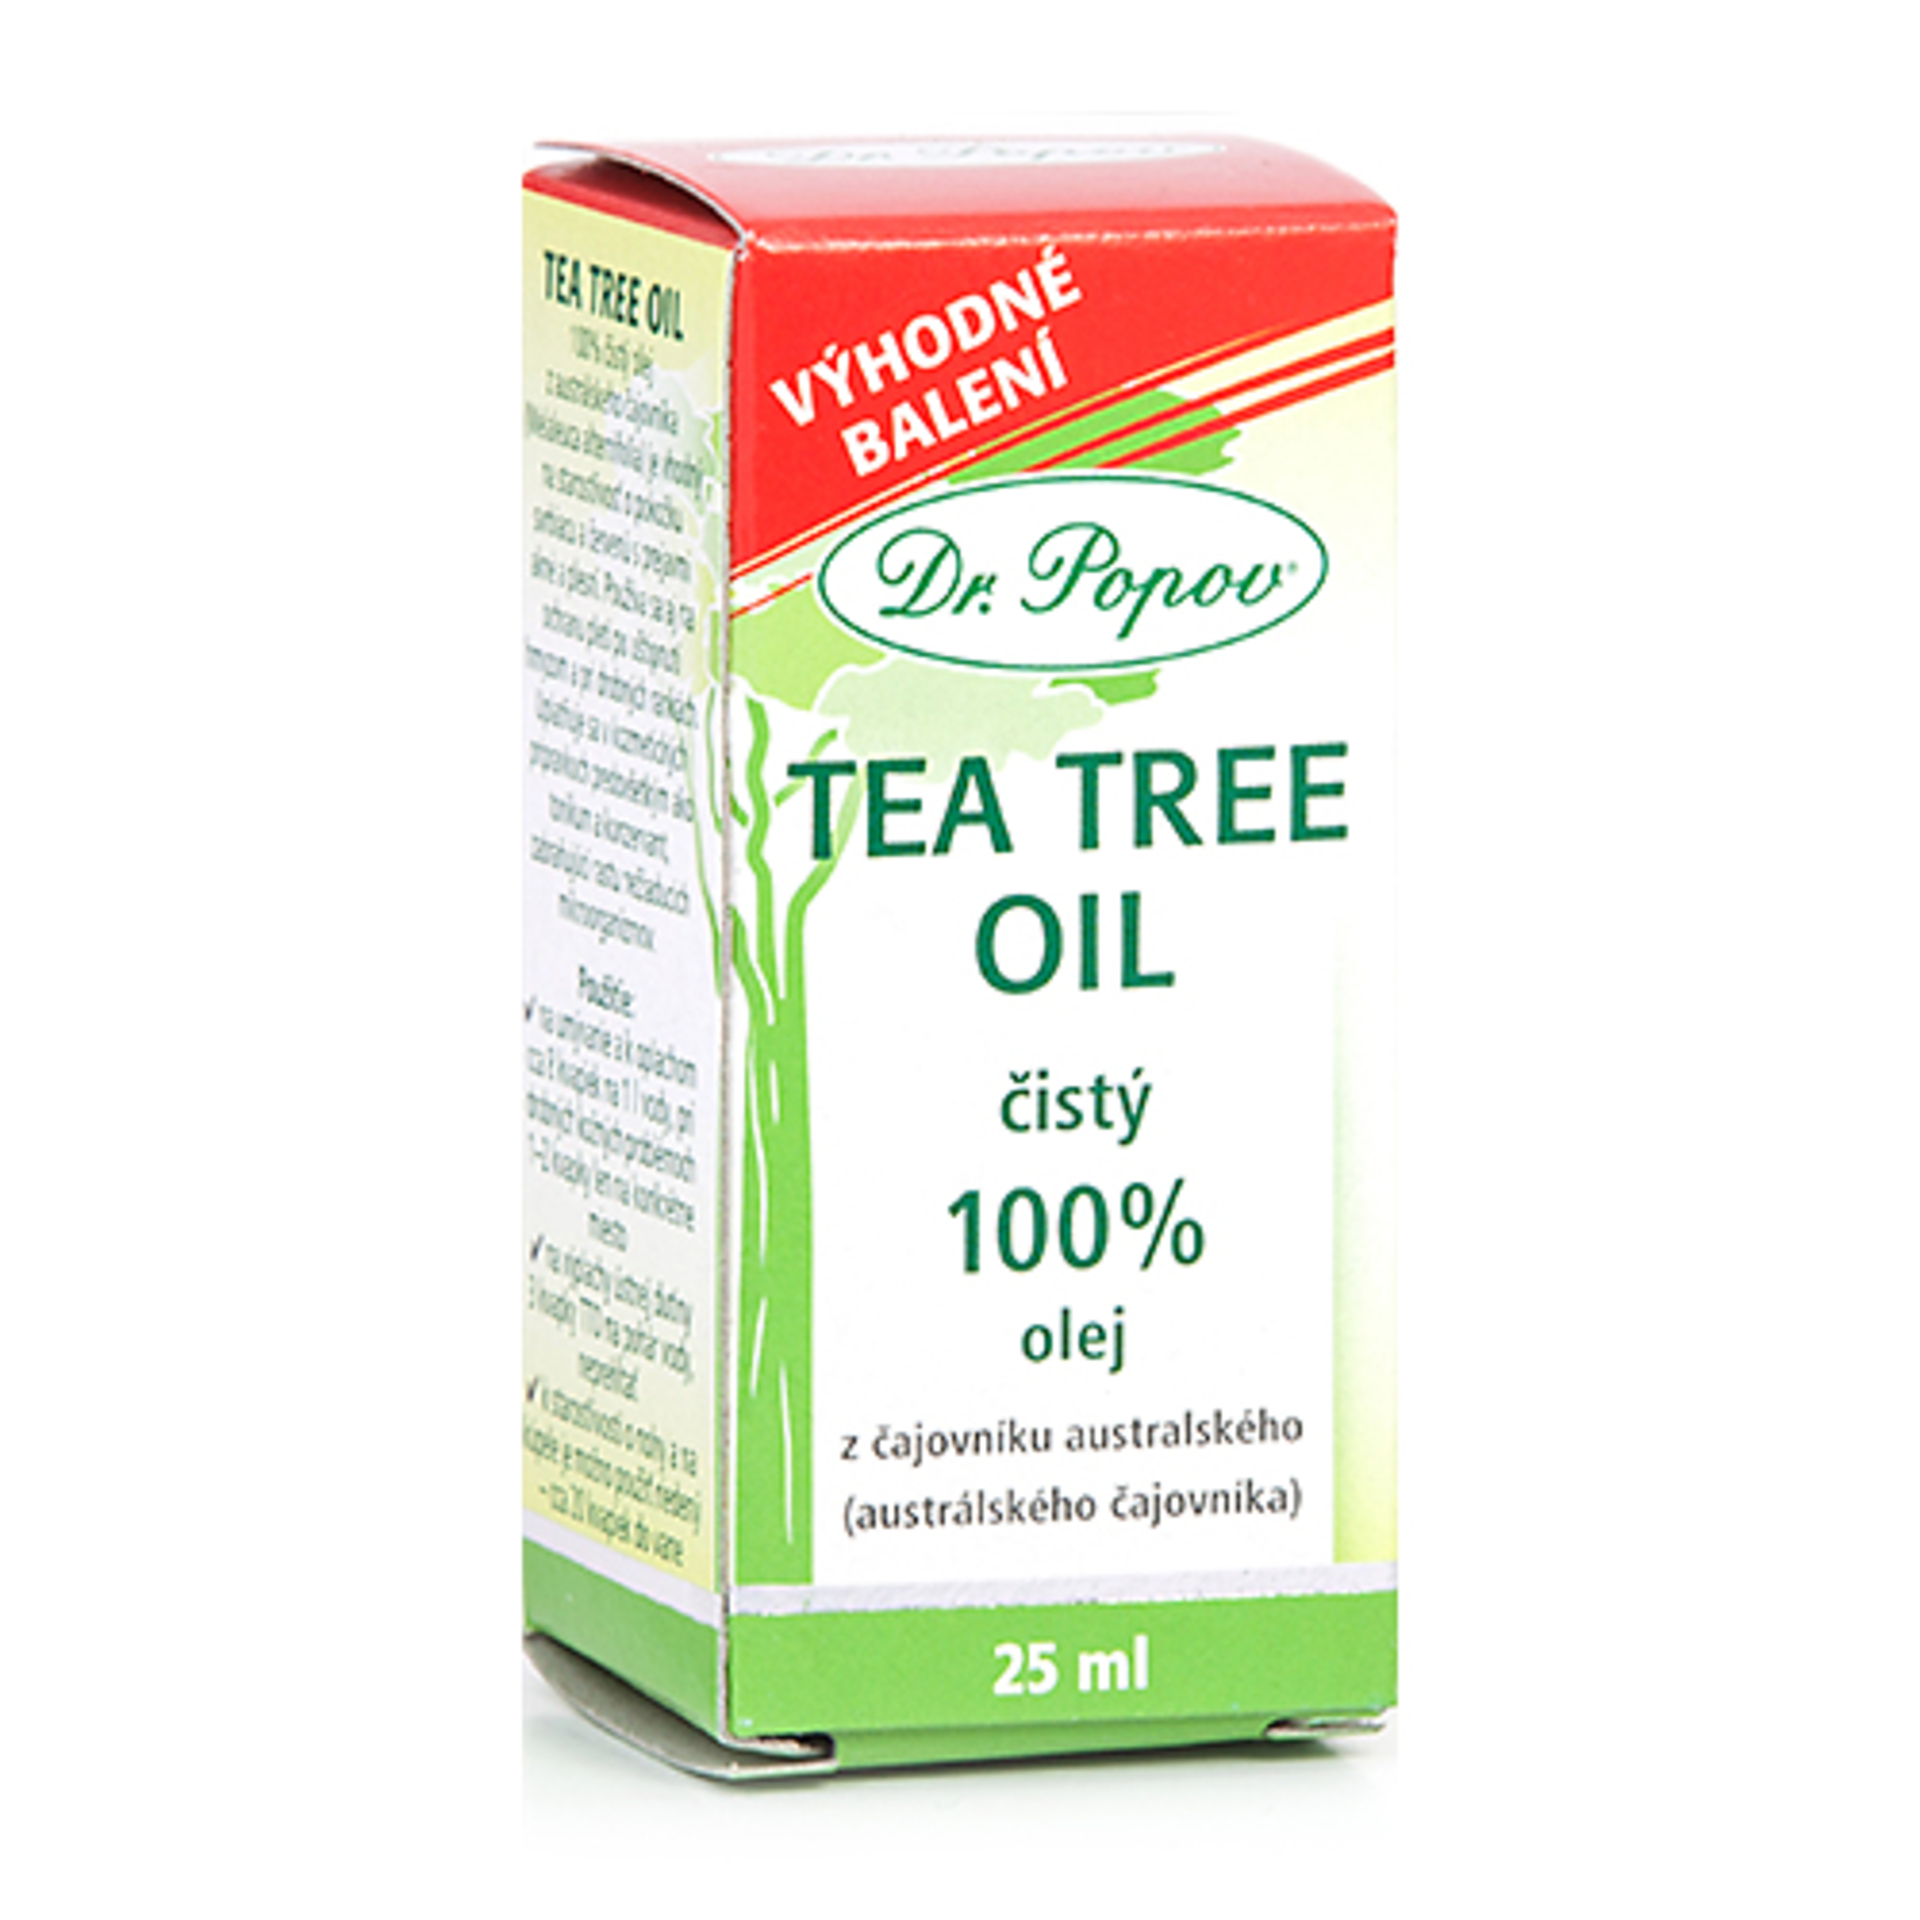 Dr. Popov Tea tree oil 100% 25 ml